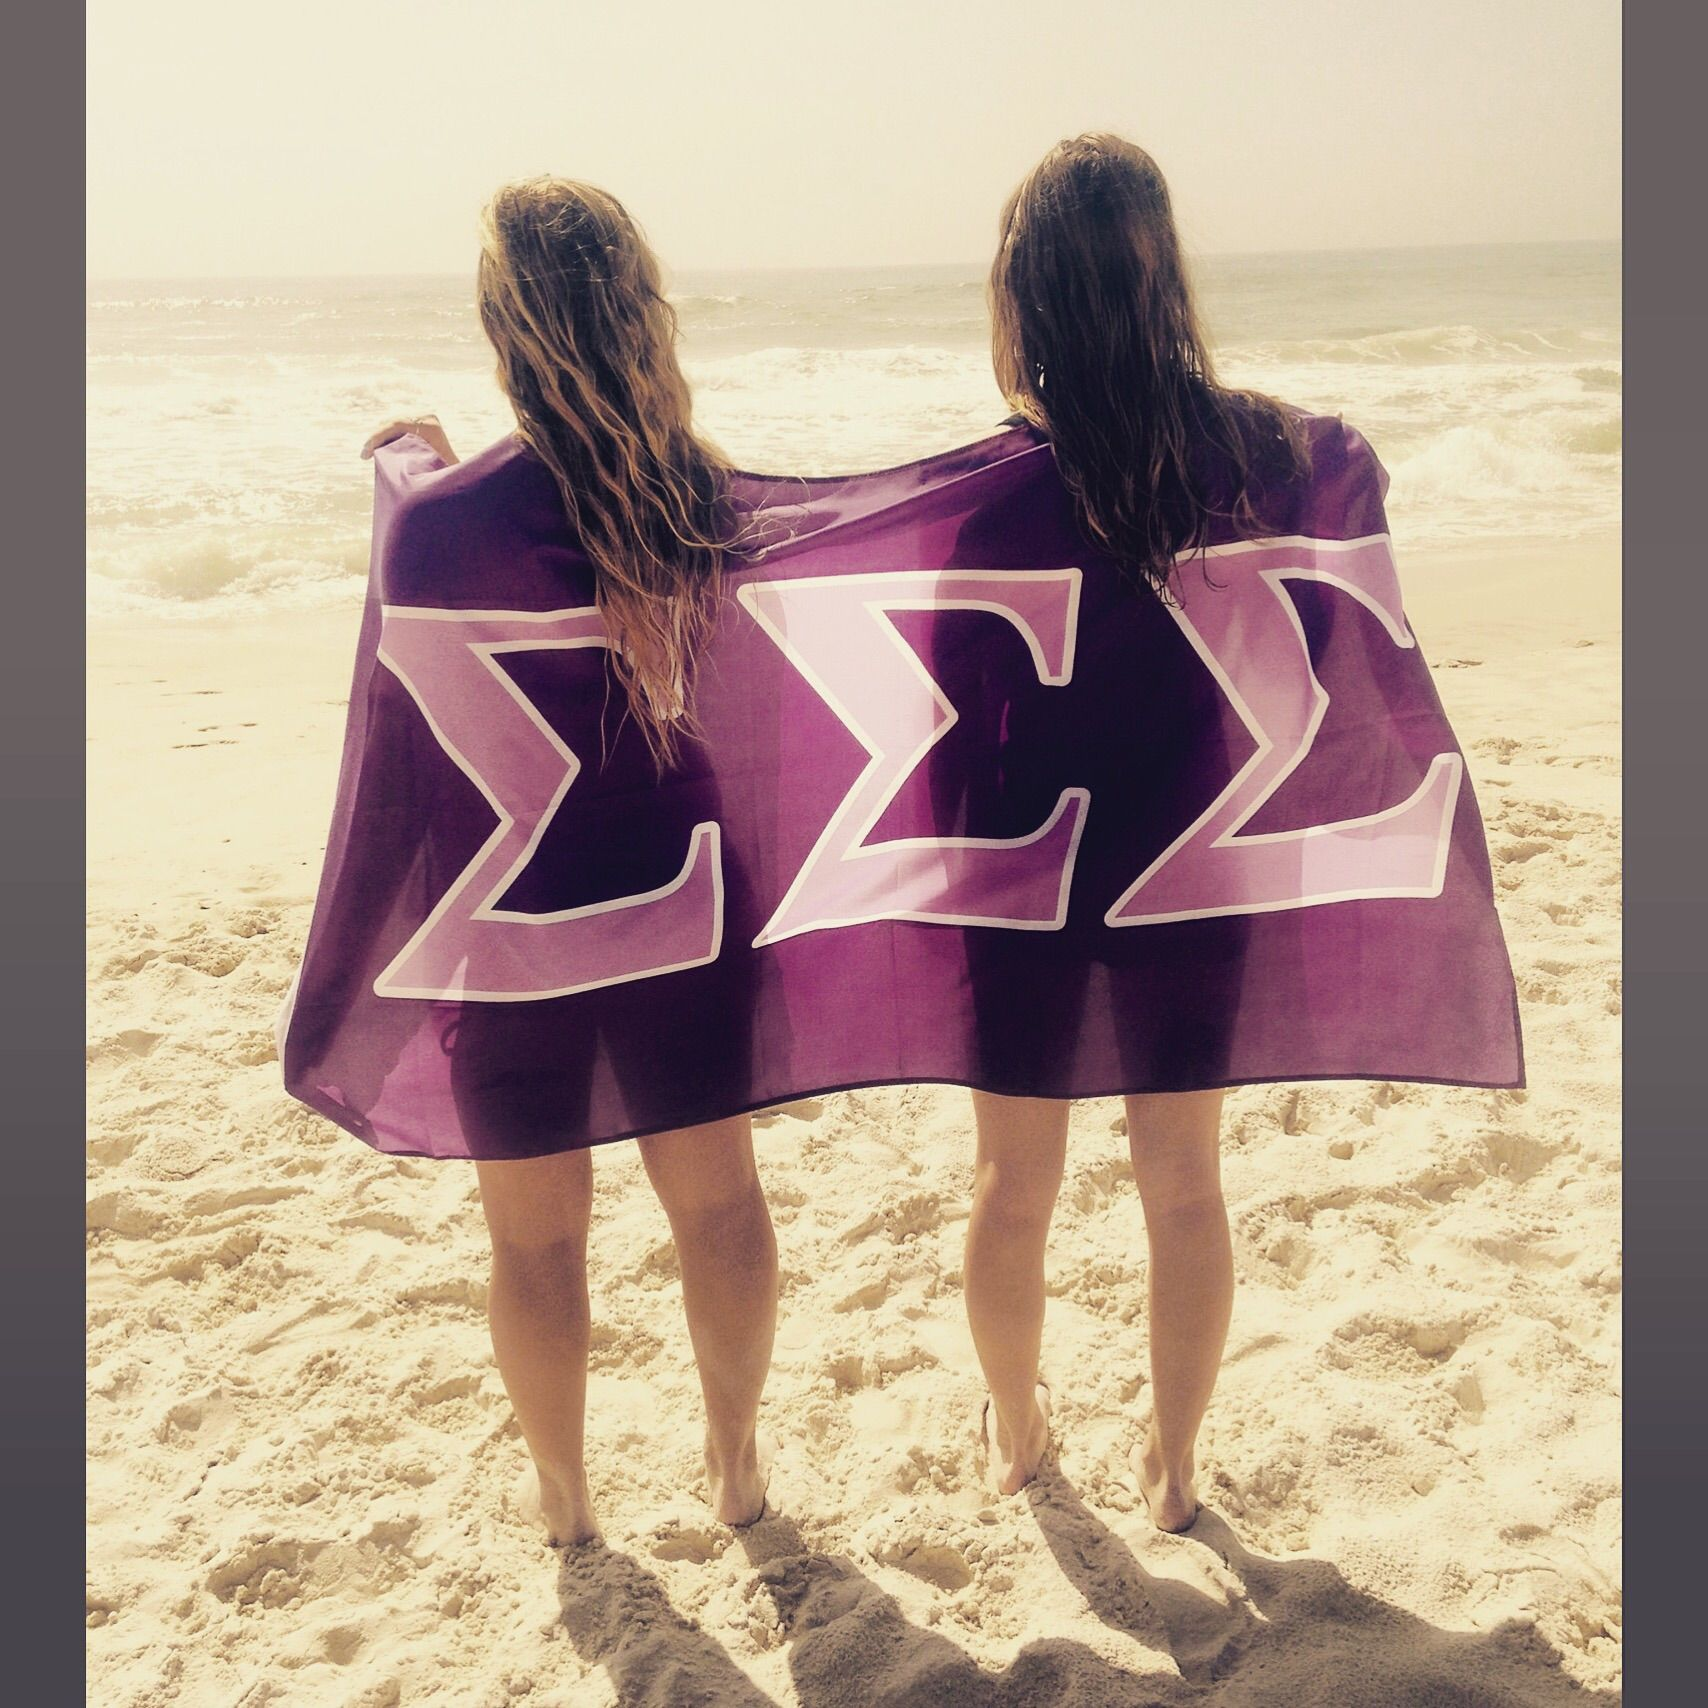 Typical sorority beach picture. TSM.